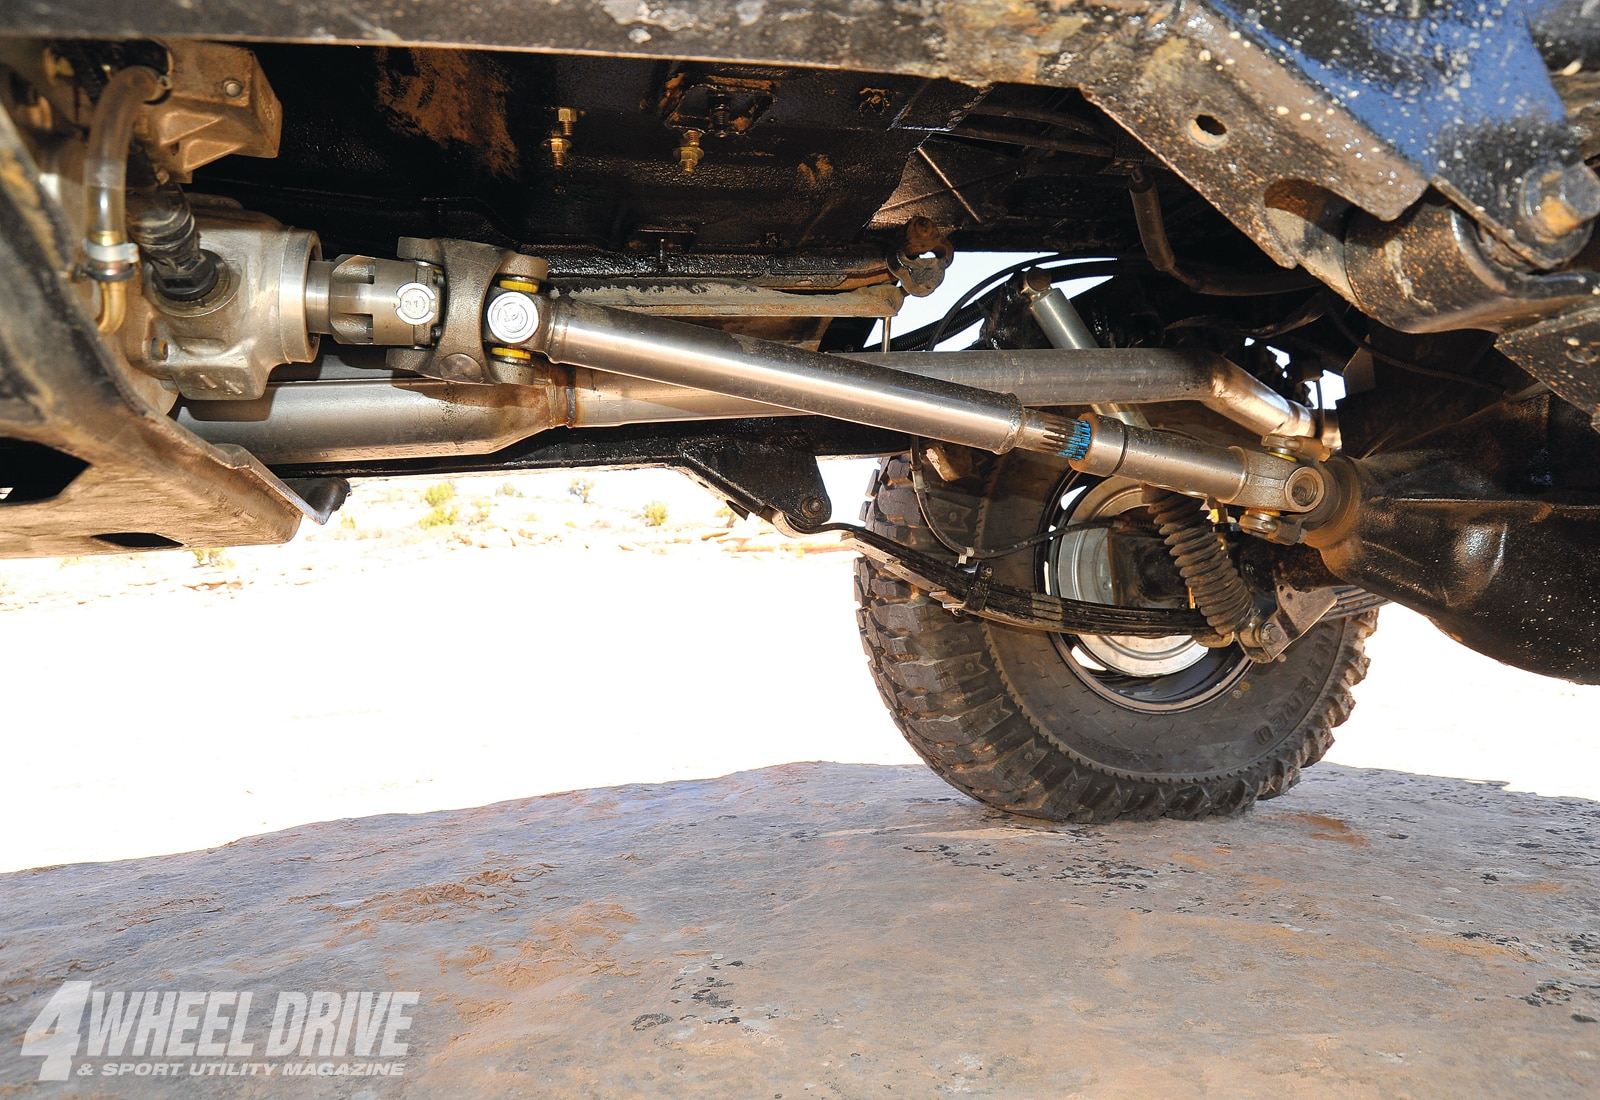 1007 4wd 08+1994 jeep wrangler YJ+tom wood CV driveshafts